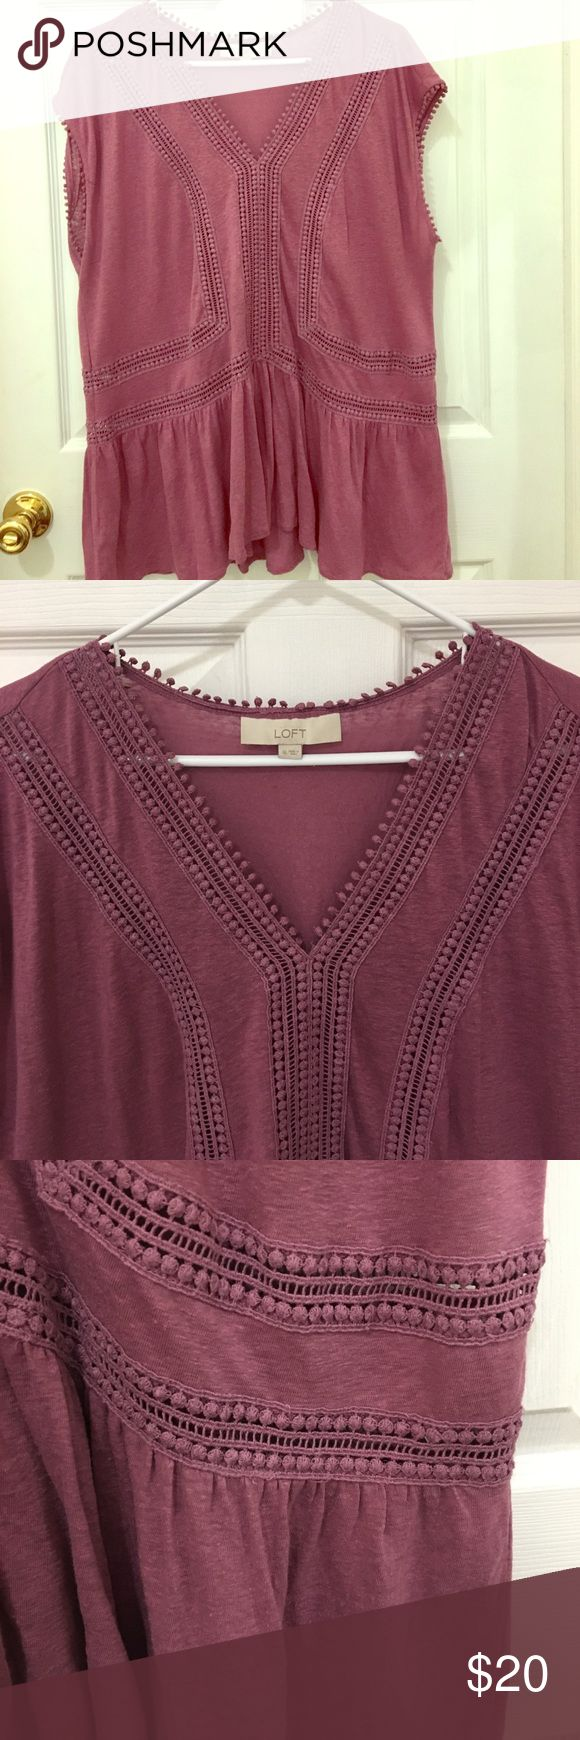 Pink peplum top with crochet details This super cute top is in great condition! It's unique because of its' crochet details and open stitching which allow you to decide if you want to wear something under or show a peek of skin 😉💕 LOFT Tops Blouses